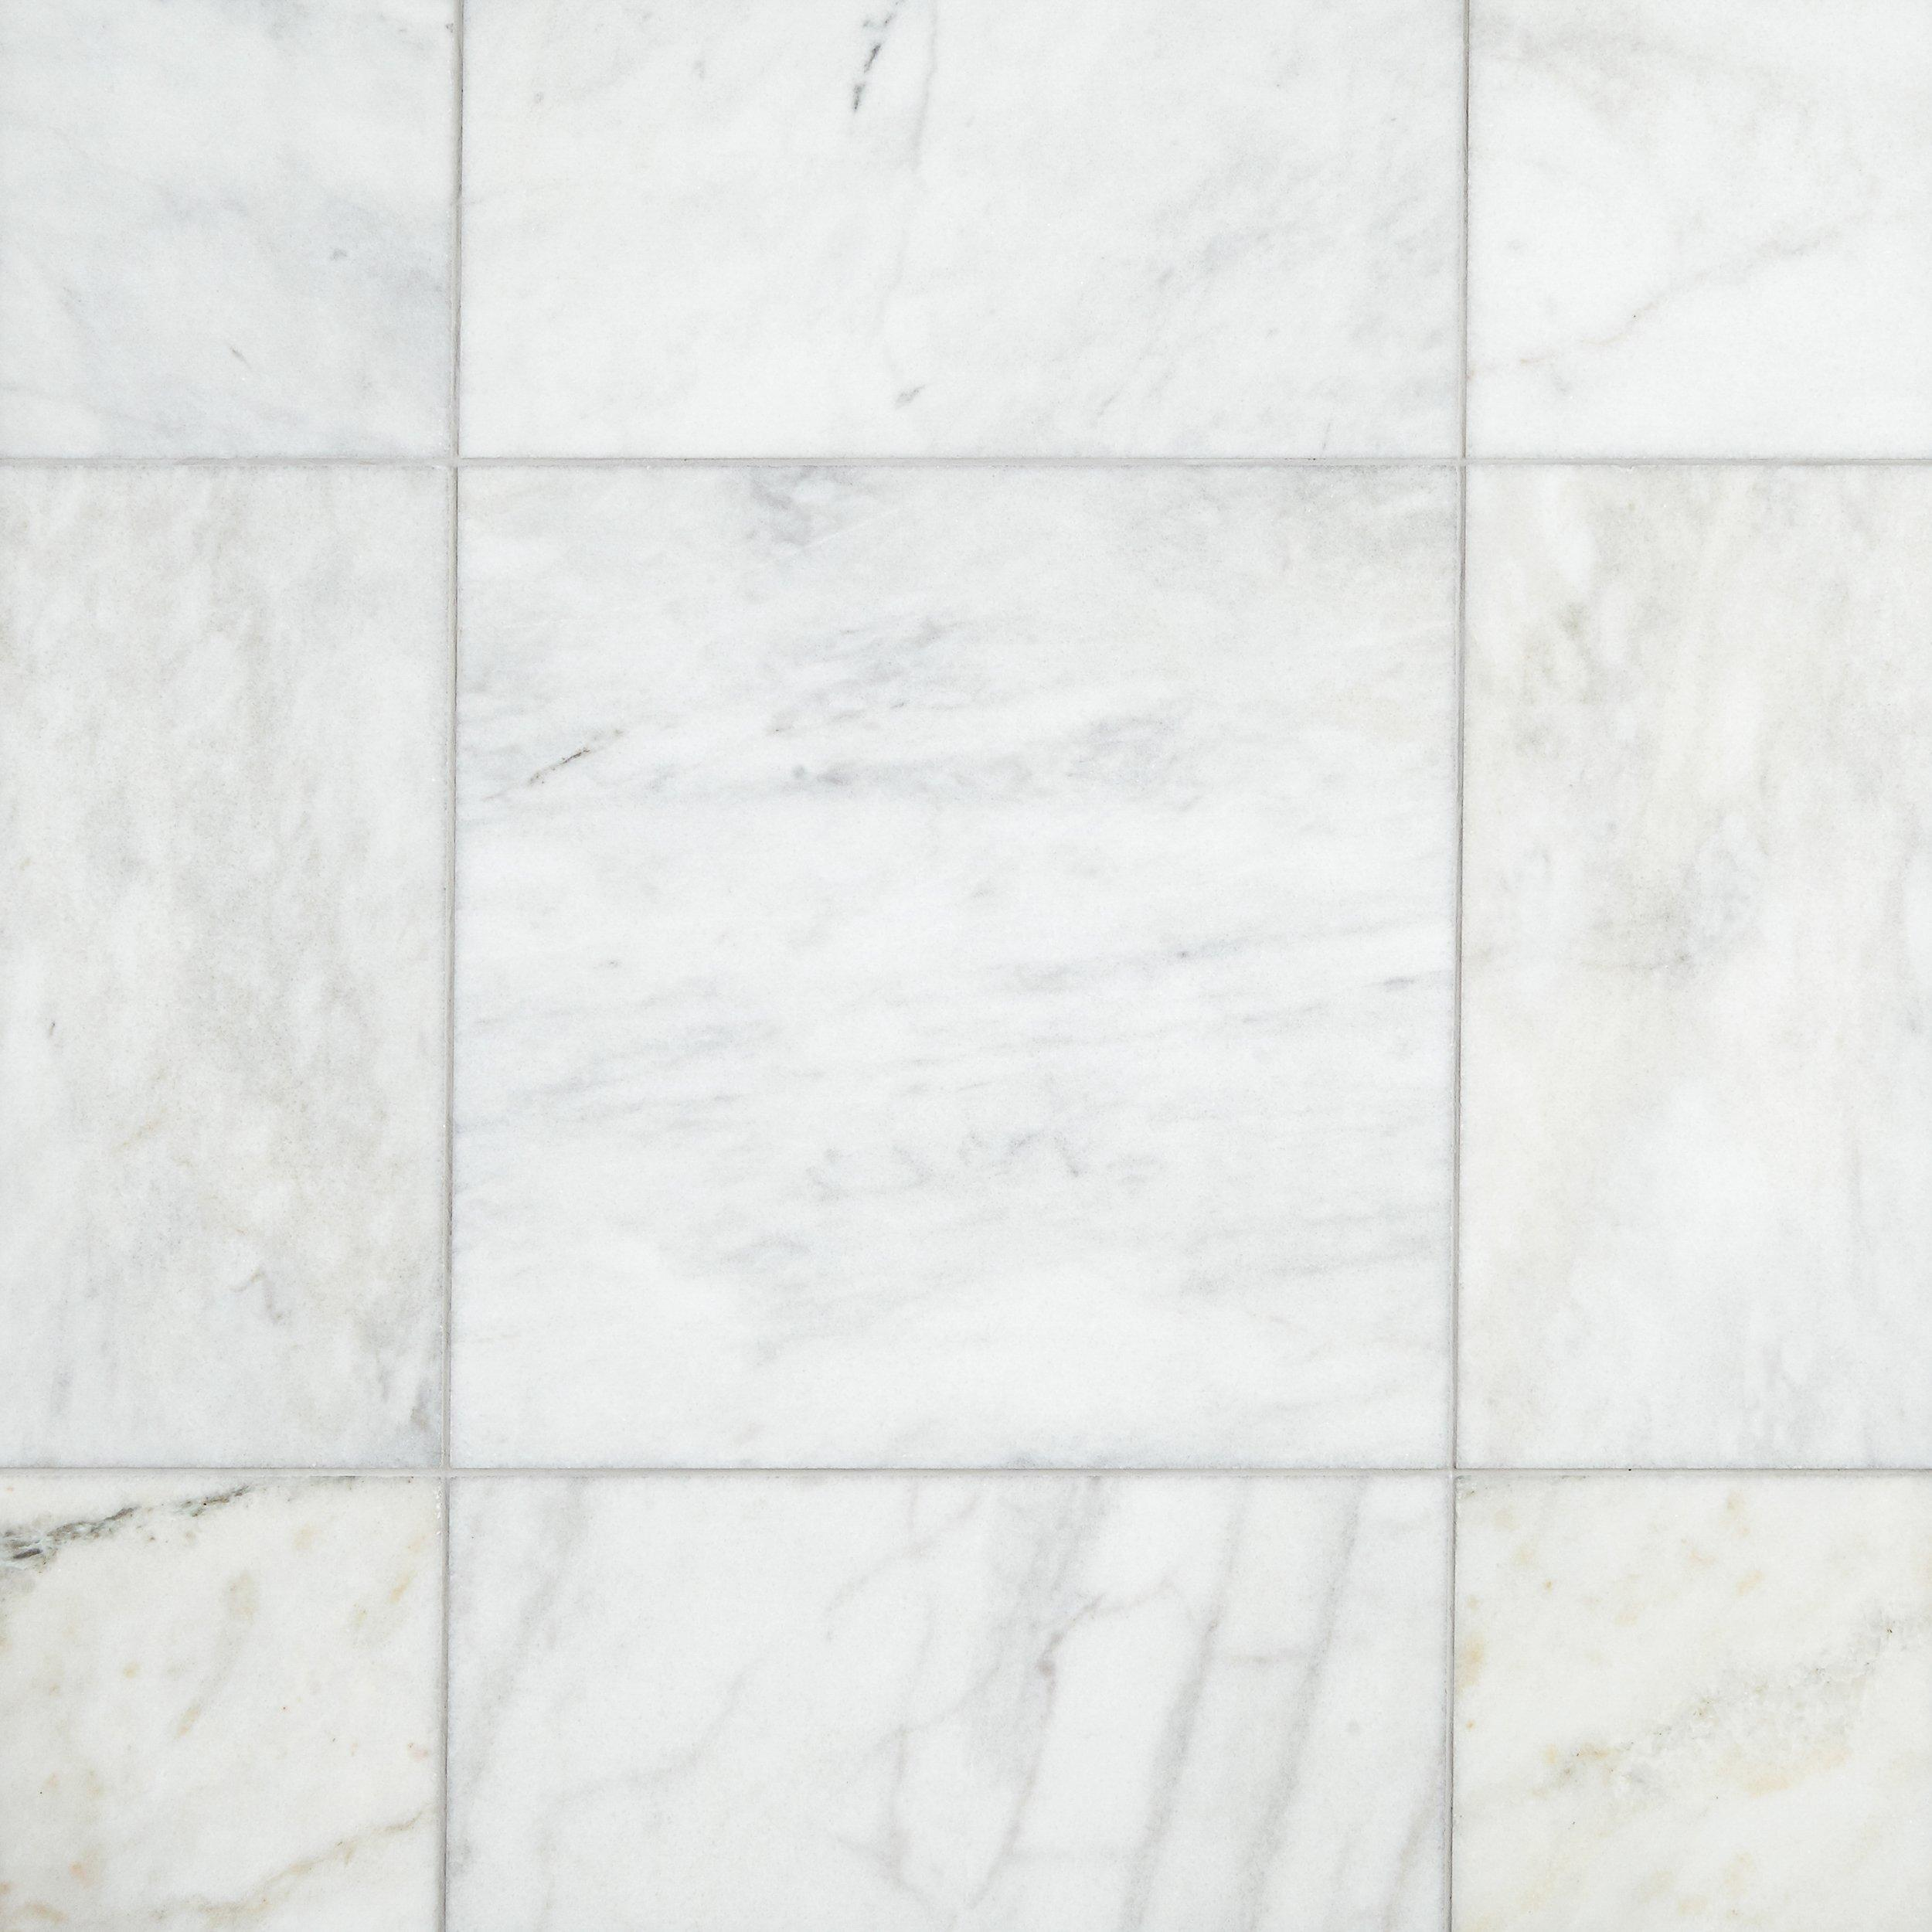 Italian white carrara 3 x 6 subway polished marble tile 3x6 3x6 marble subway tile tumbled marble tile bianco bianco carrara white carrera polished marble ocean white honed marble tile image dailygadgetfo Image collections